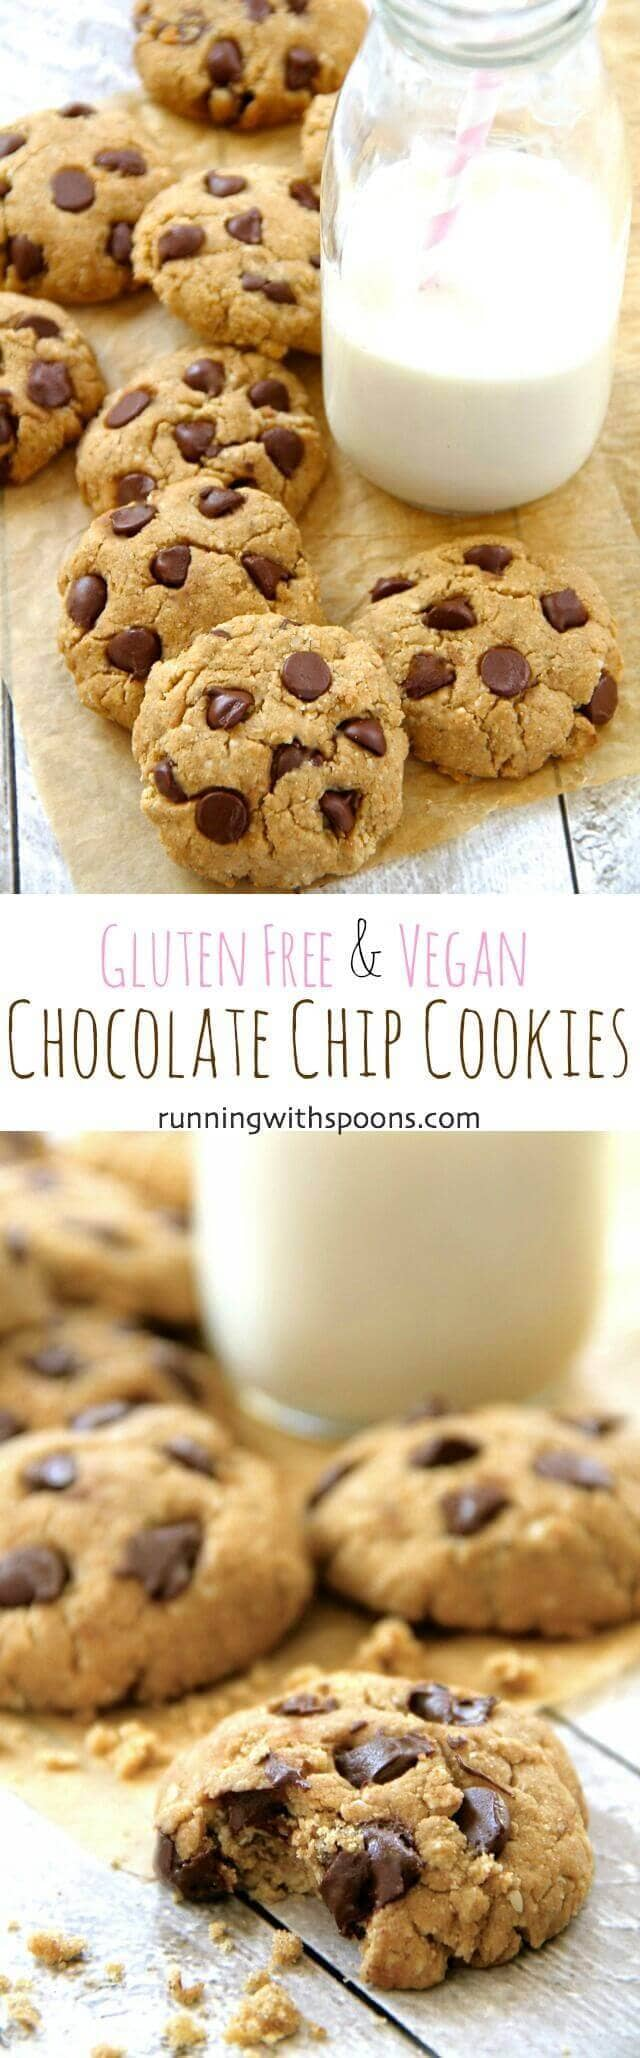 Gluten-Free Vegan Chocolate Chip Cookies